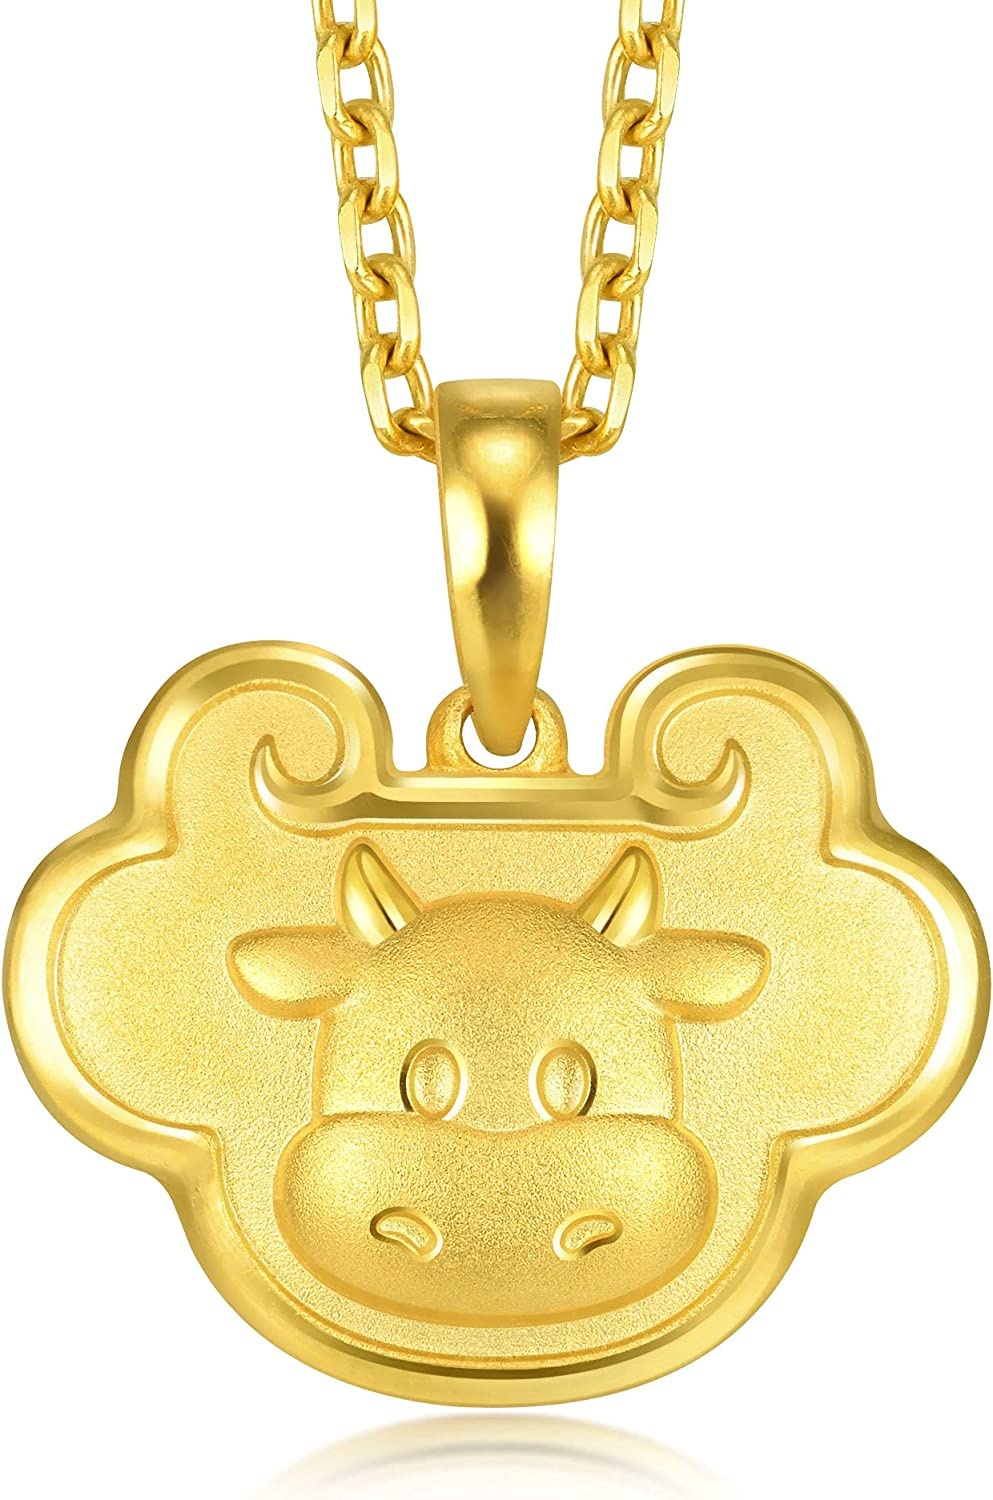 Chow Sang Sang 999.9 24K Solid Gold Price-by-Weight 3.04g Gold Ruyi Ox Pendant 91974P [Not Include the Neckace]